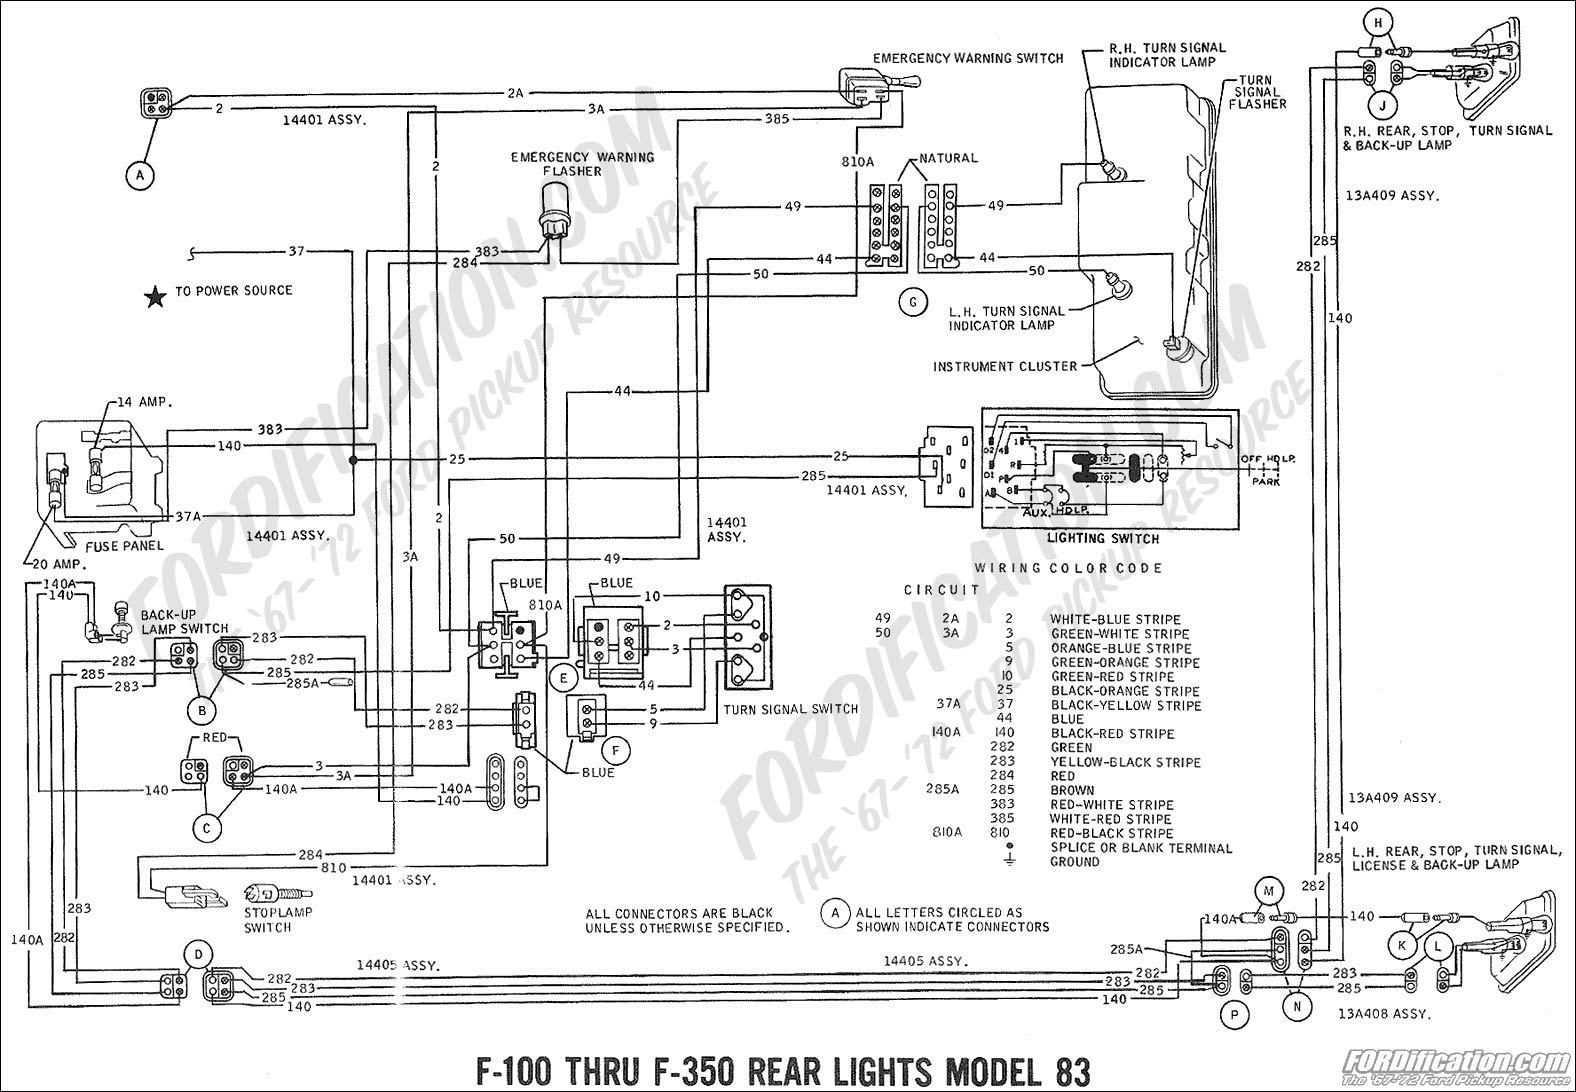 [WLLP_2054]   1965 Ford Truck Turn Signal Wiring Diagram Diagram Base Website Wiring  Diagram - ROULETTEWHEELDIAGRAM.FLORATORINO.IT | 1966 Ford F100 Blinker Switch Wiring |  | Diagram Database Site Full Edition - floratorino